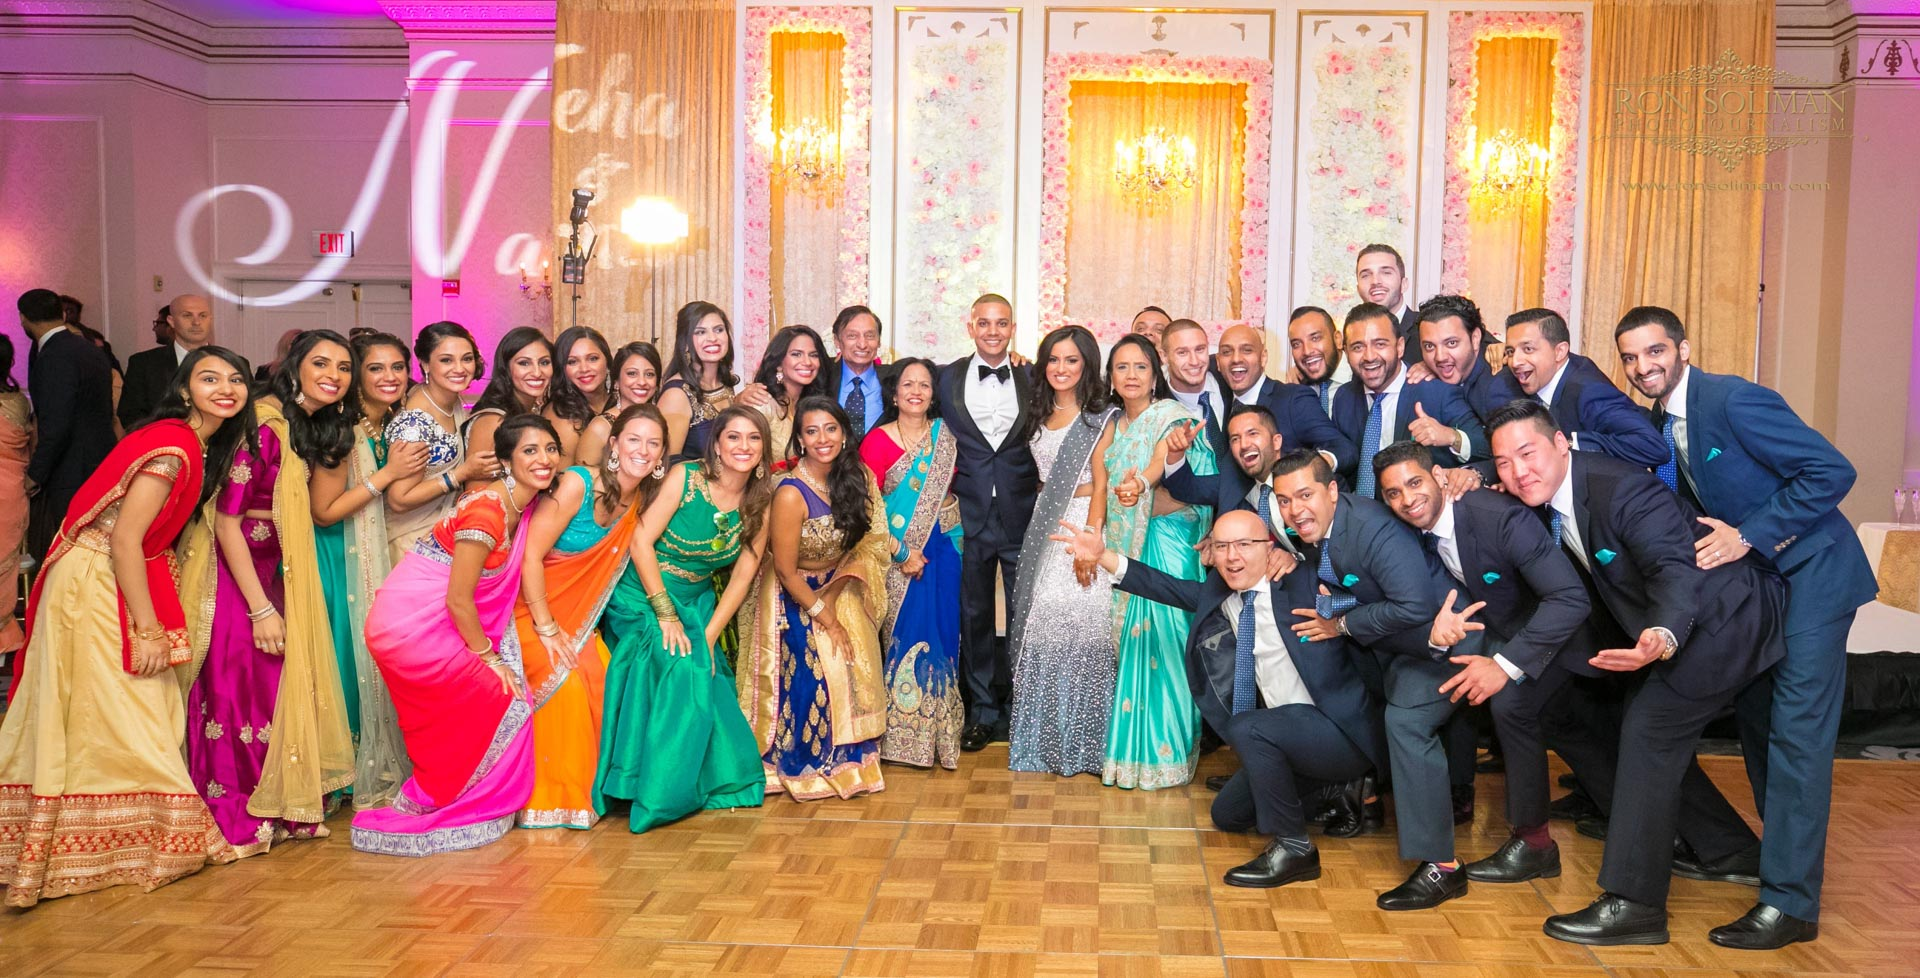 HILTON PEARL RIVER INDIAN WEDDING 49